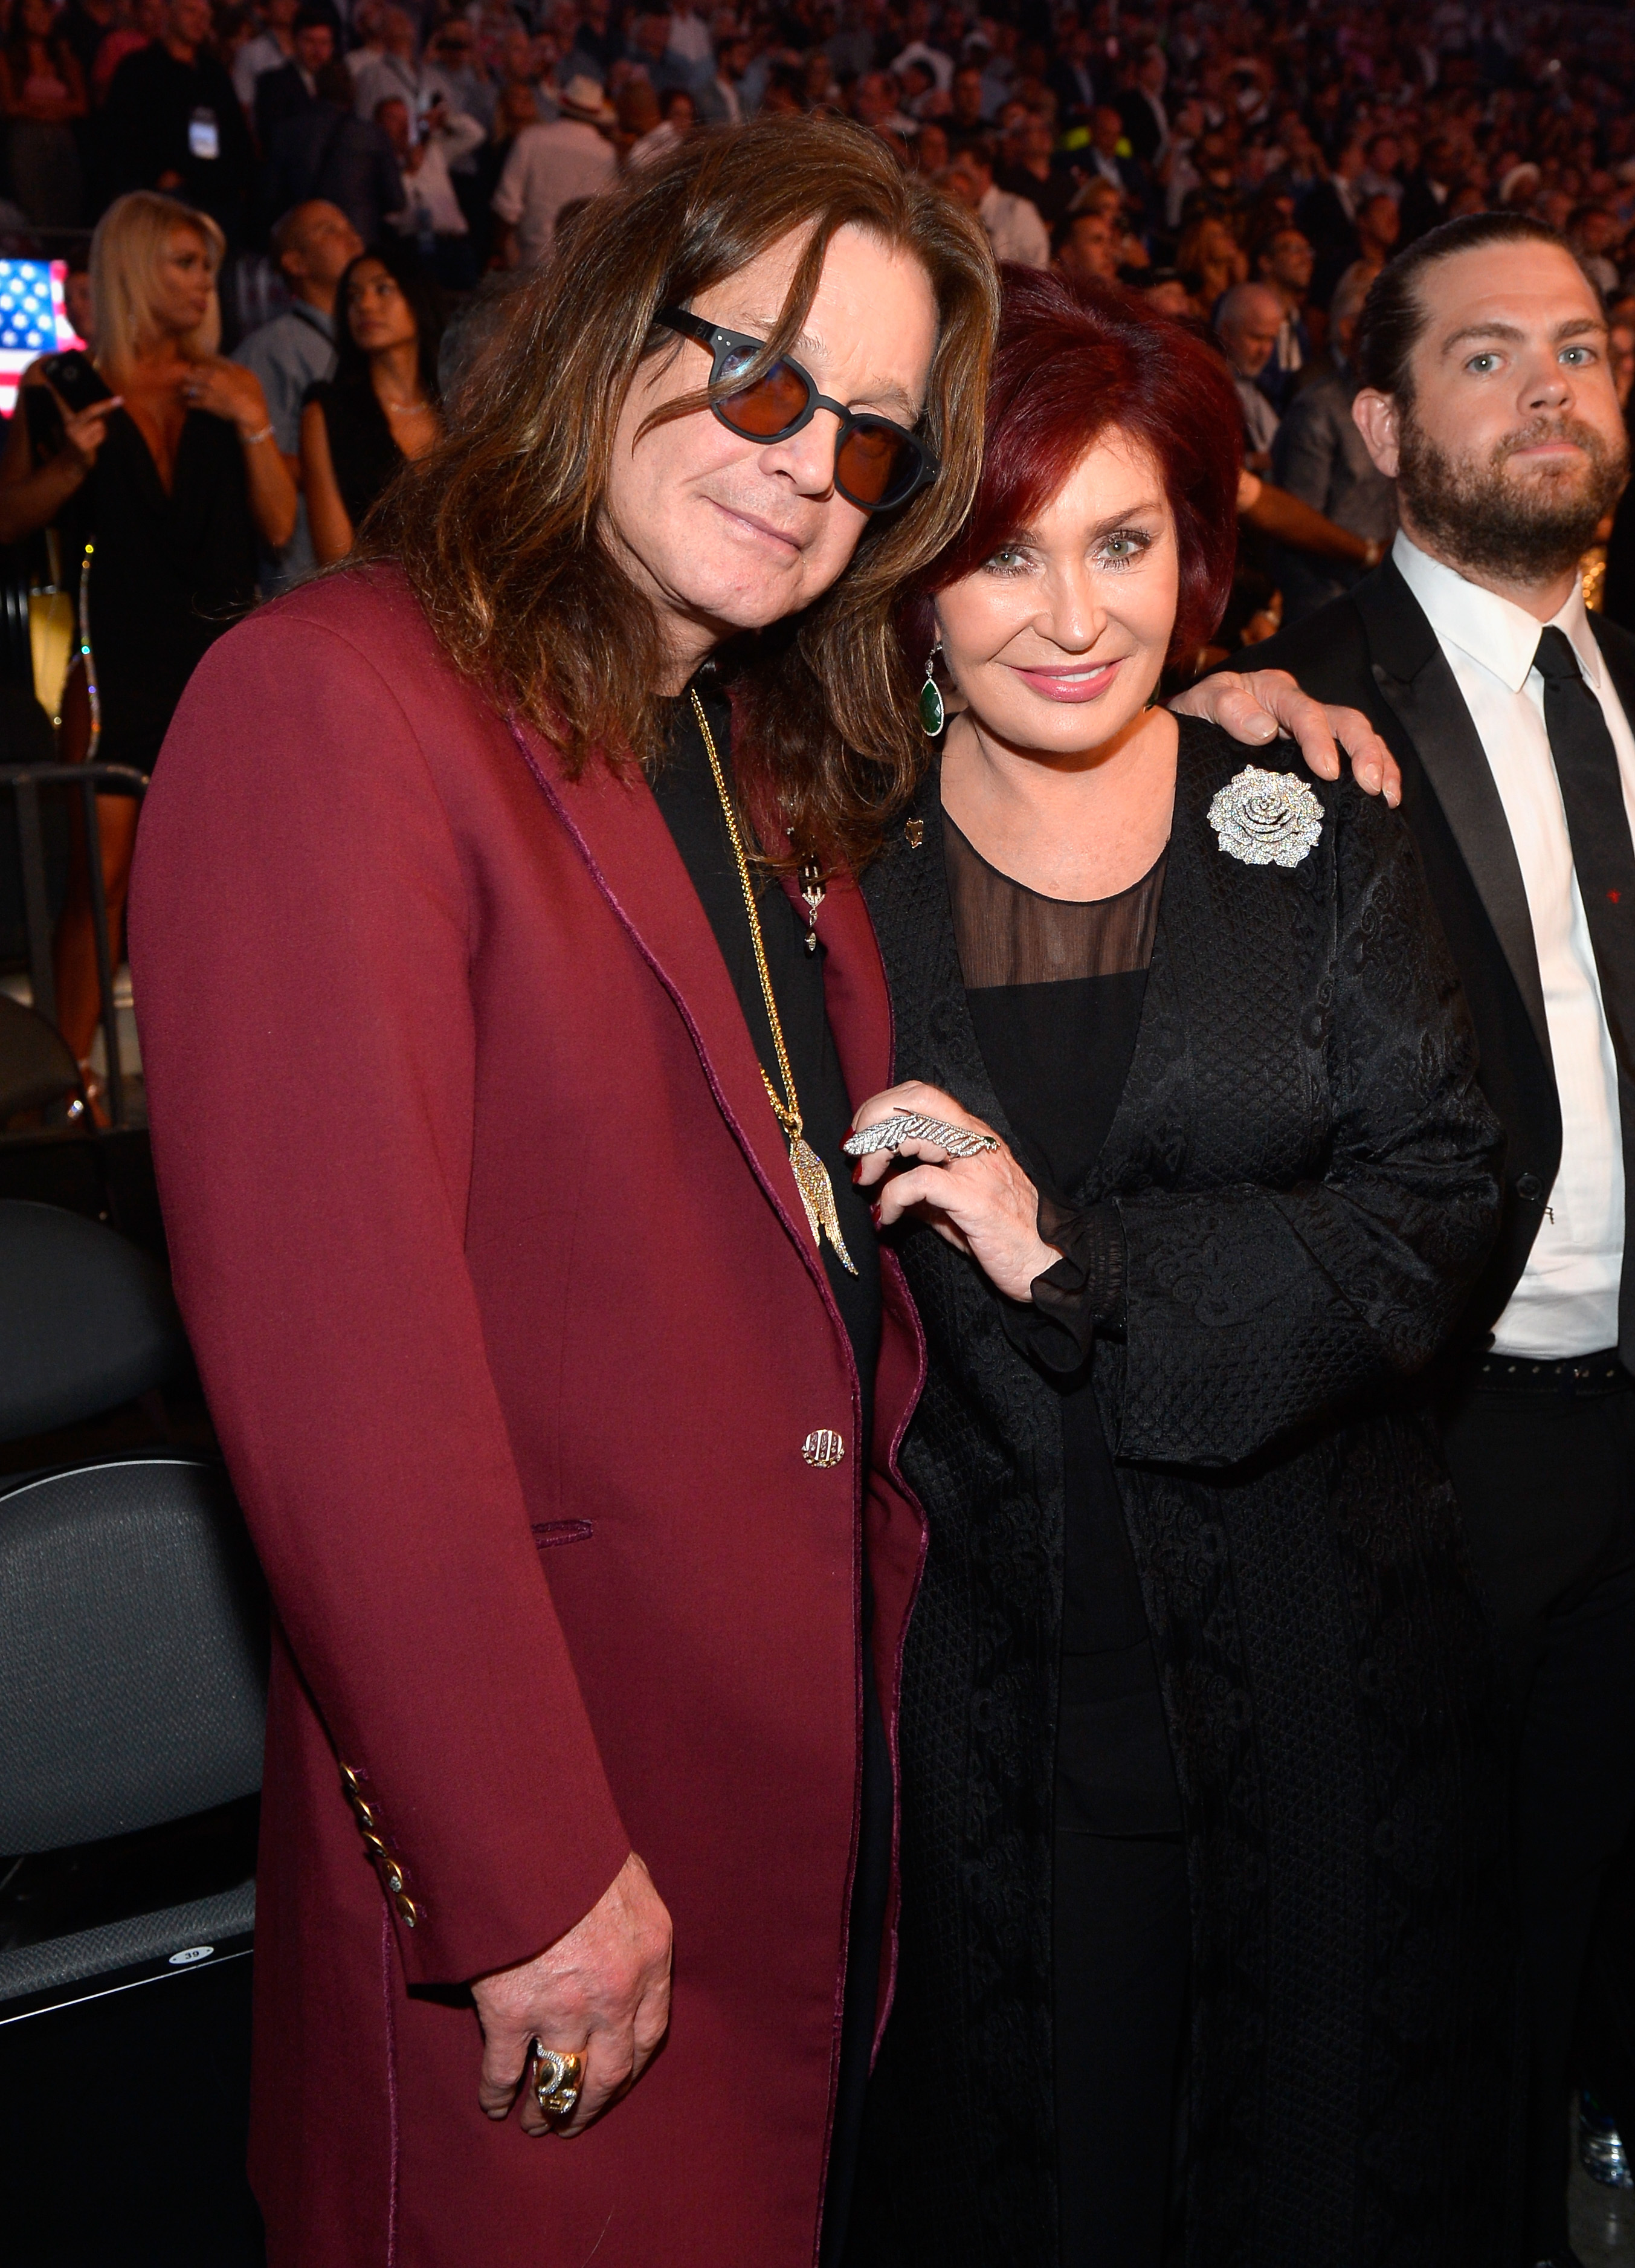 Ozzy Osbourne, Sharon Osbourne and son Jack Osbourne attend the boxing match between Floyd Mayweather Jr. and Conor McGregor at T Mobile Arena in Las Vegas on Aug. 26, 2017, after the Showtime, WME IME and Mayweather Promotions VIP Pre Fight party.